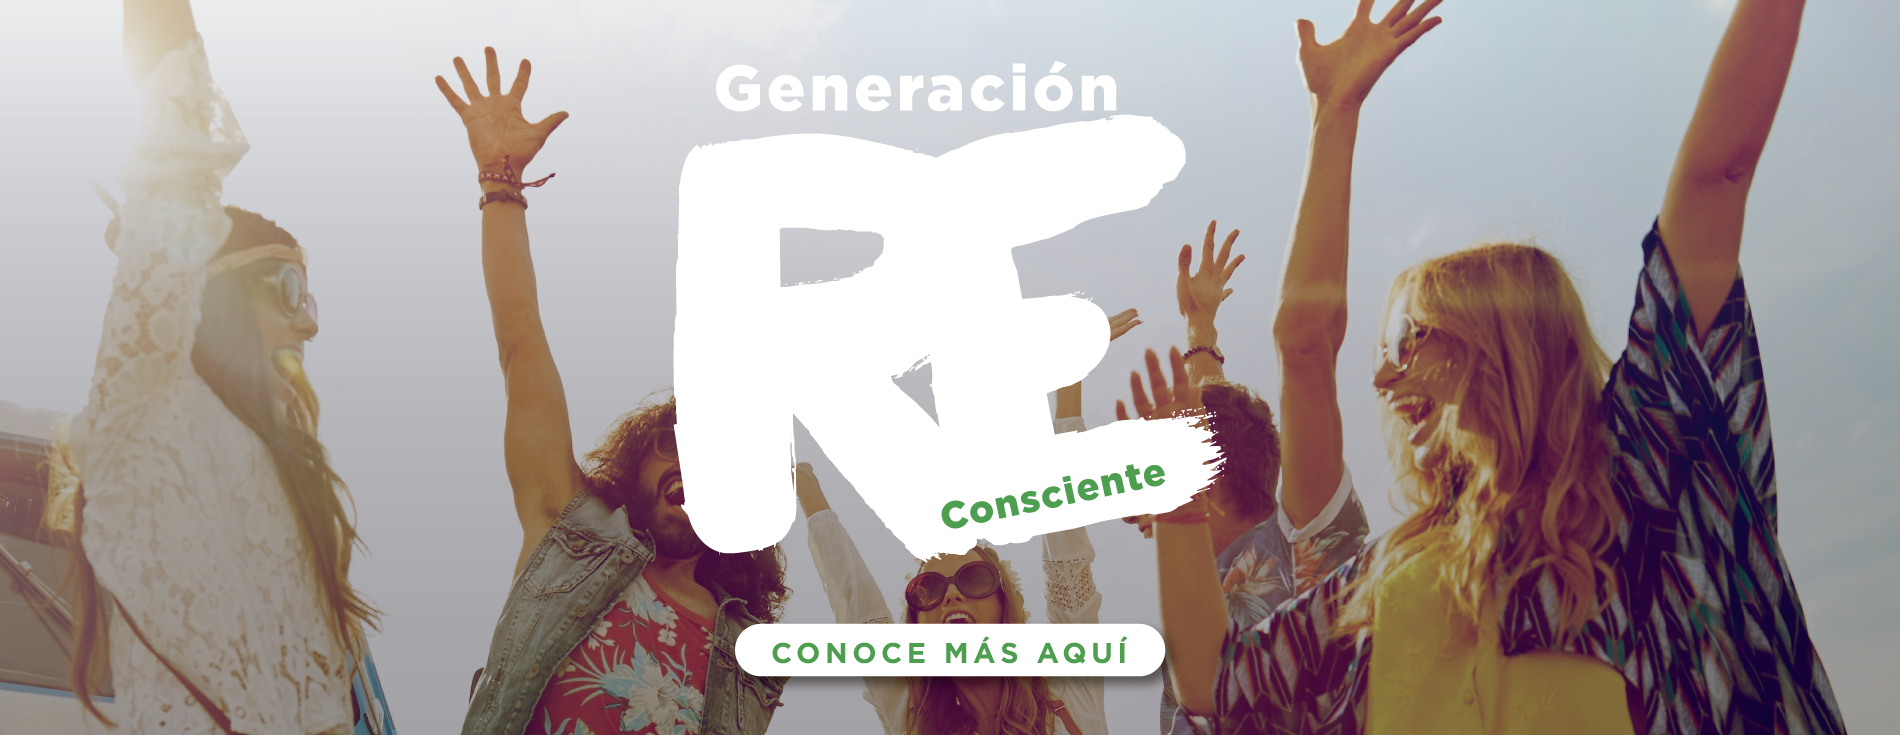 Generación Re - Sincelejo